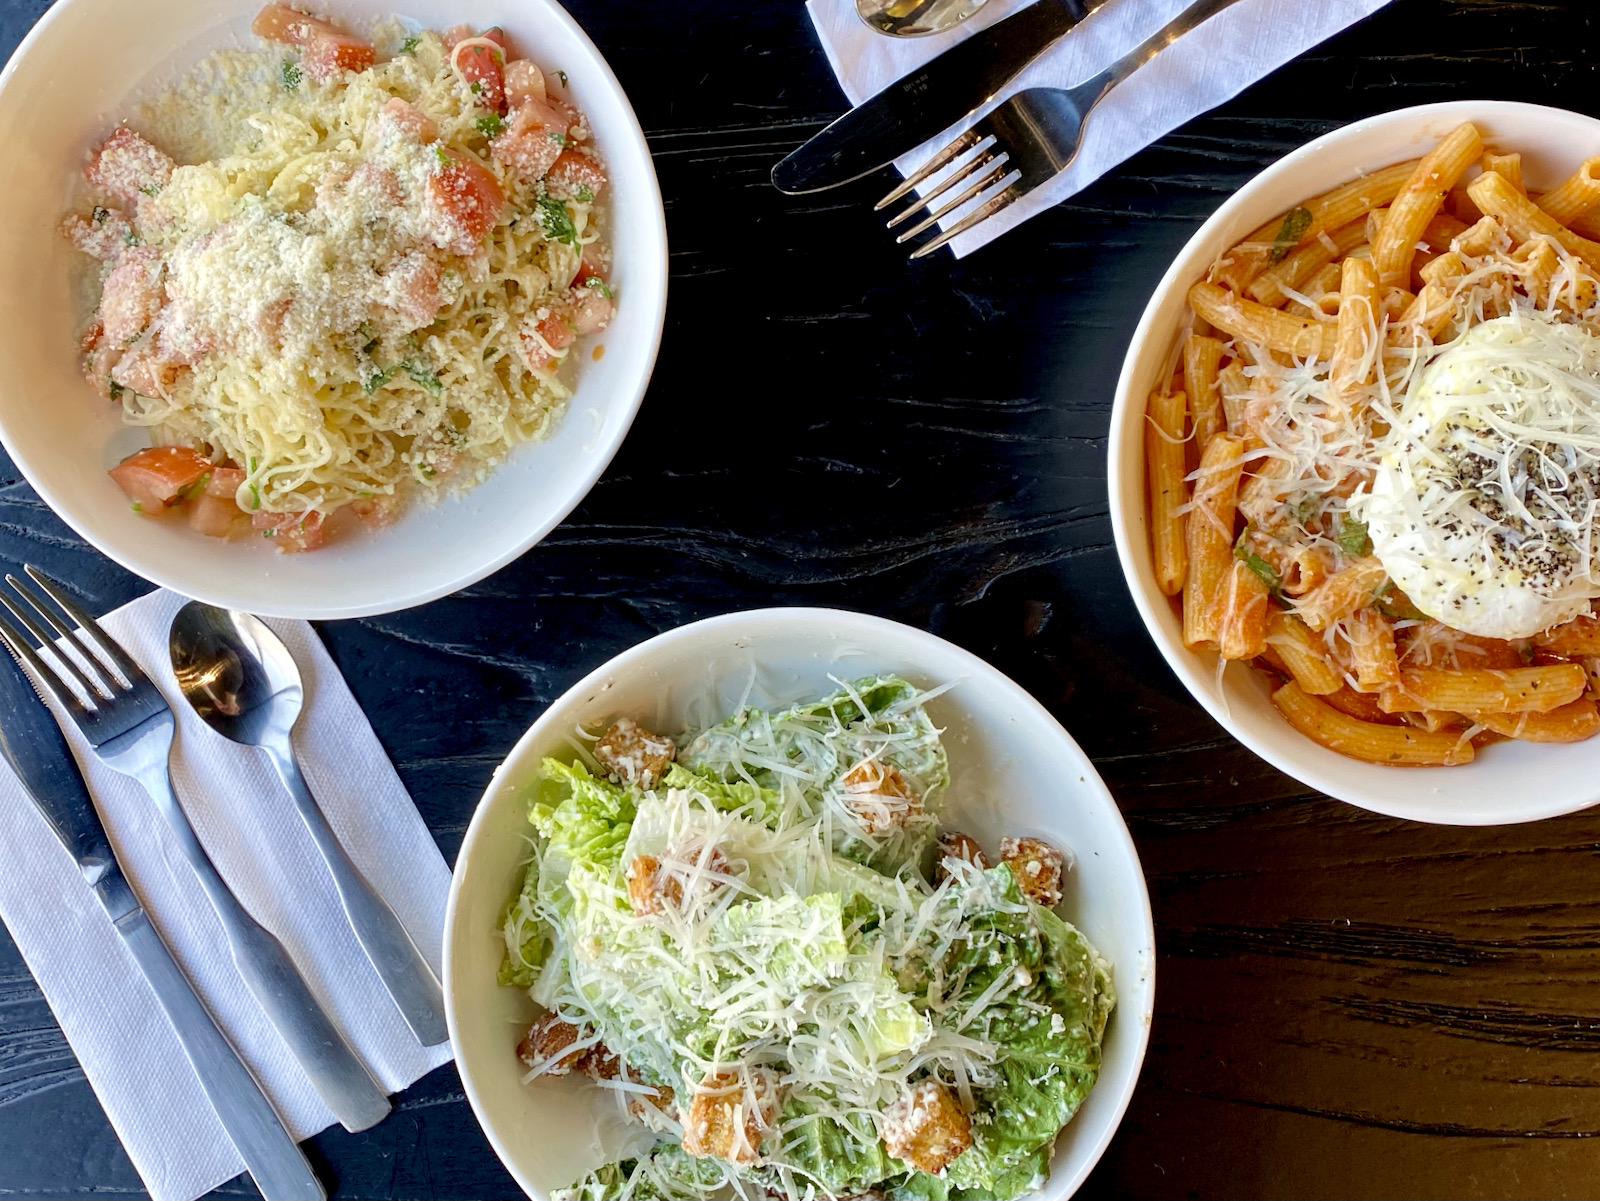 Pasta and salad in bowls